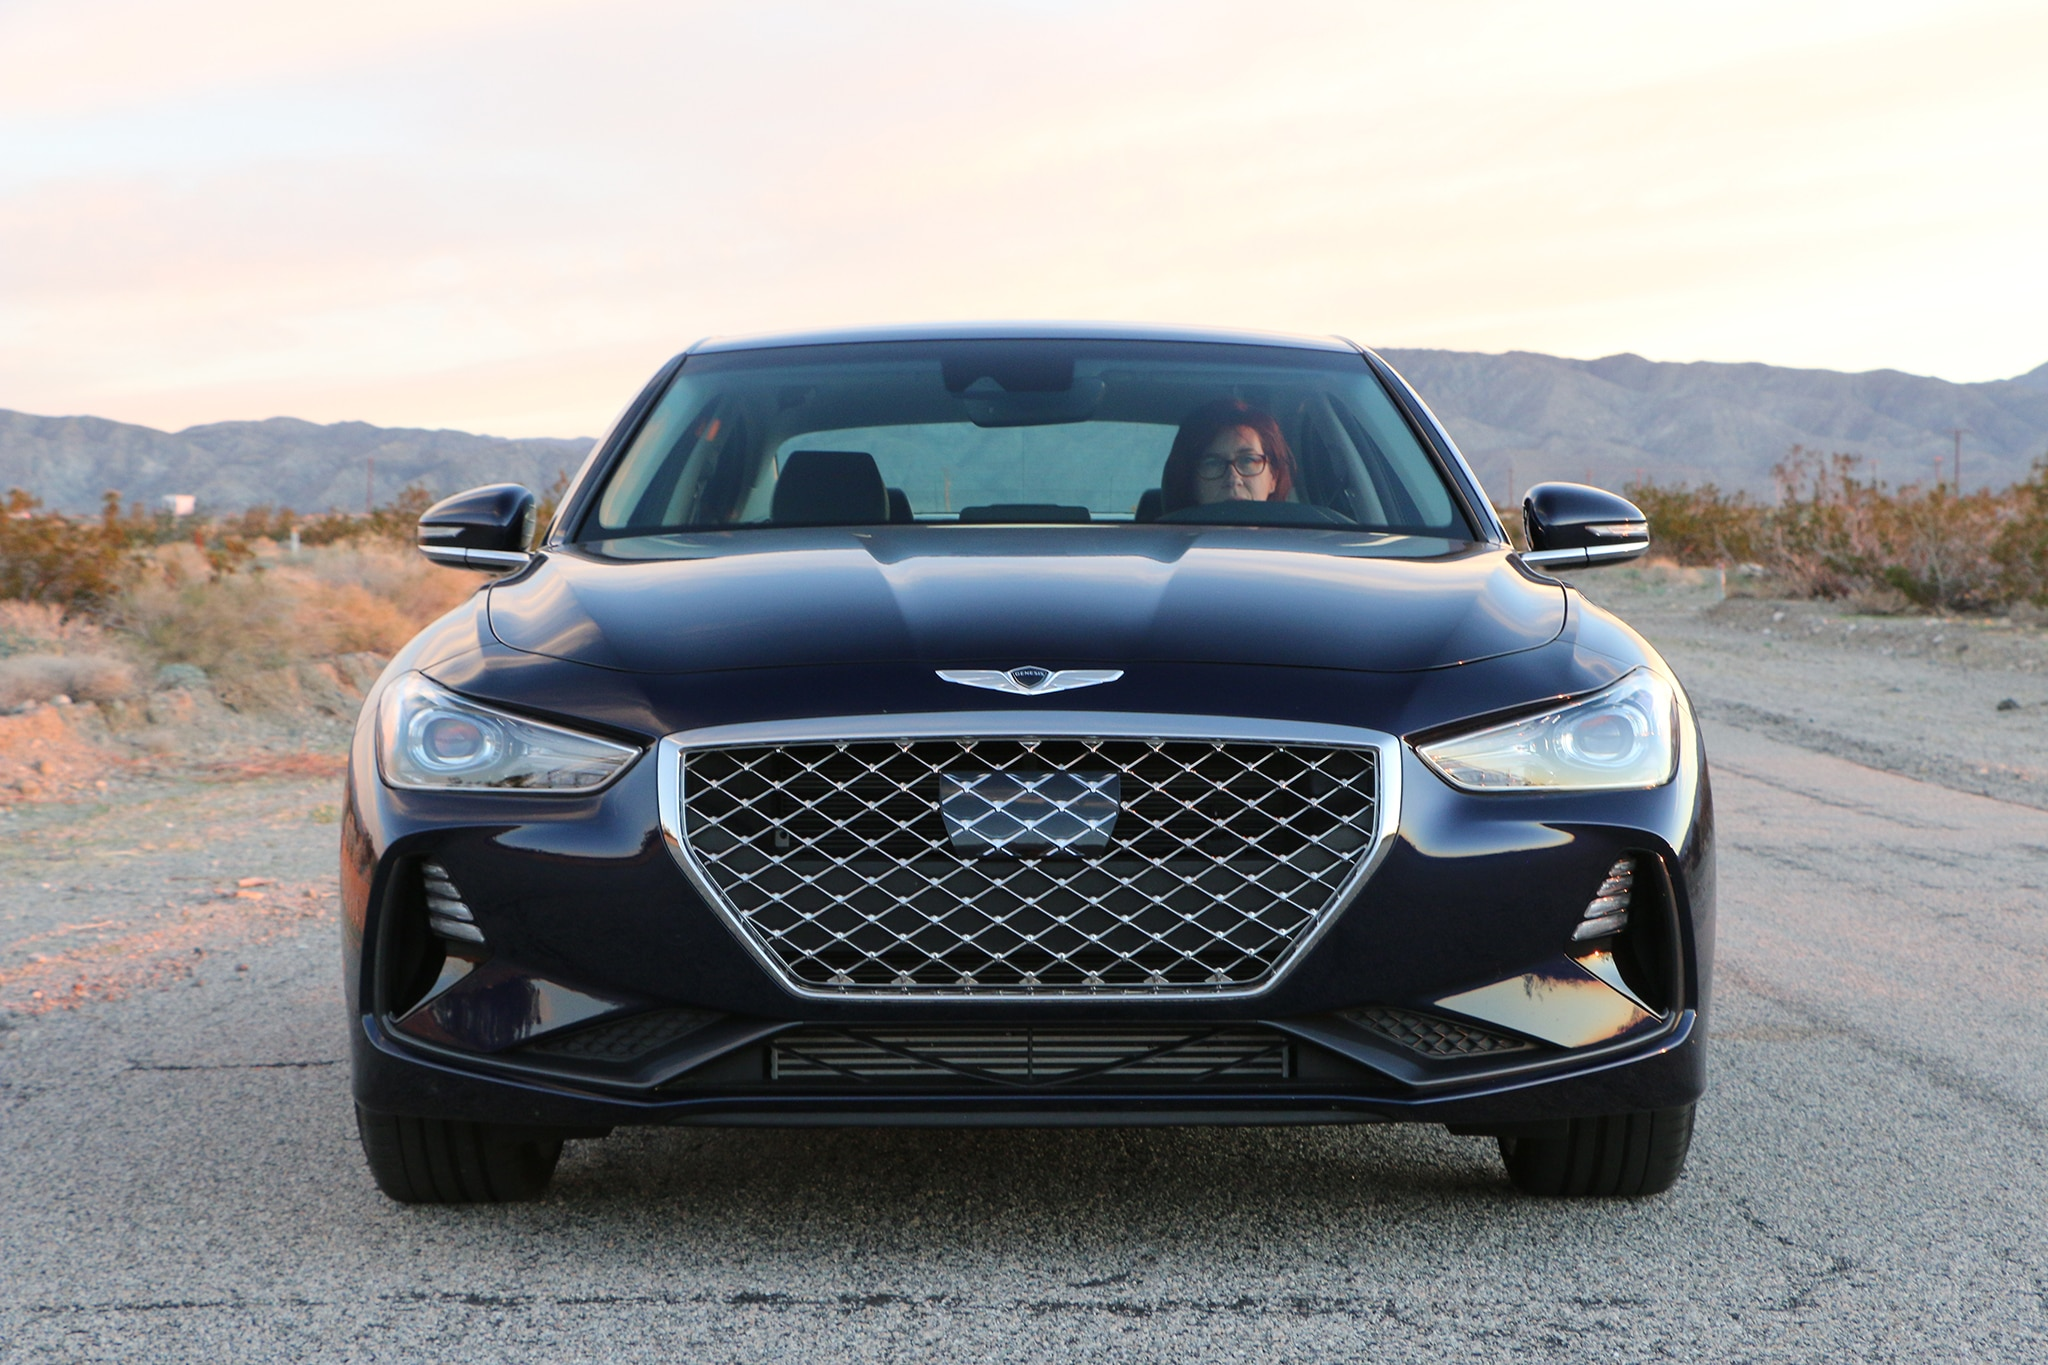 Genesis 38 8 >> 2019 Genesis G70 2.0T Manual: Fun with a Couple Flaws | Automobile Magazine